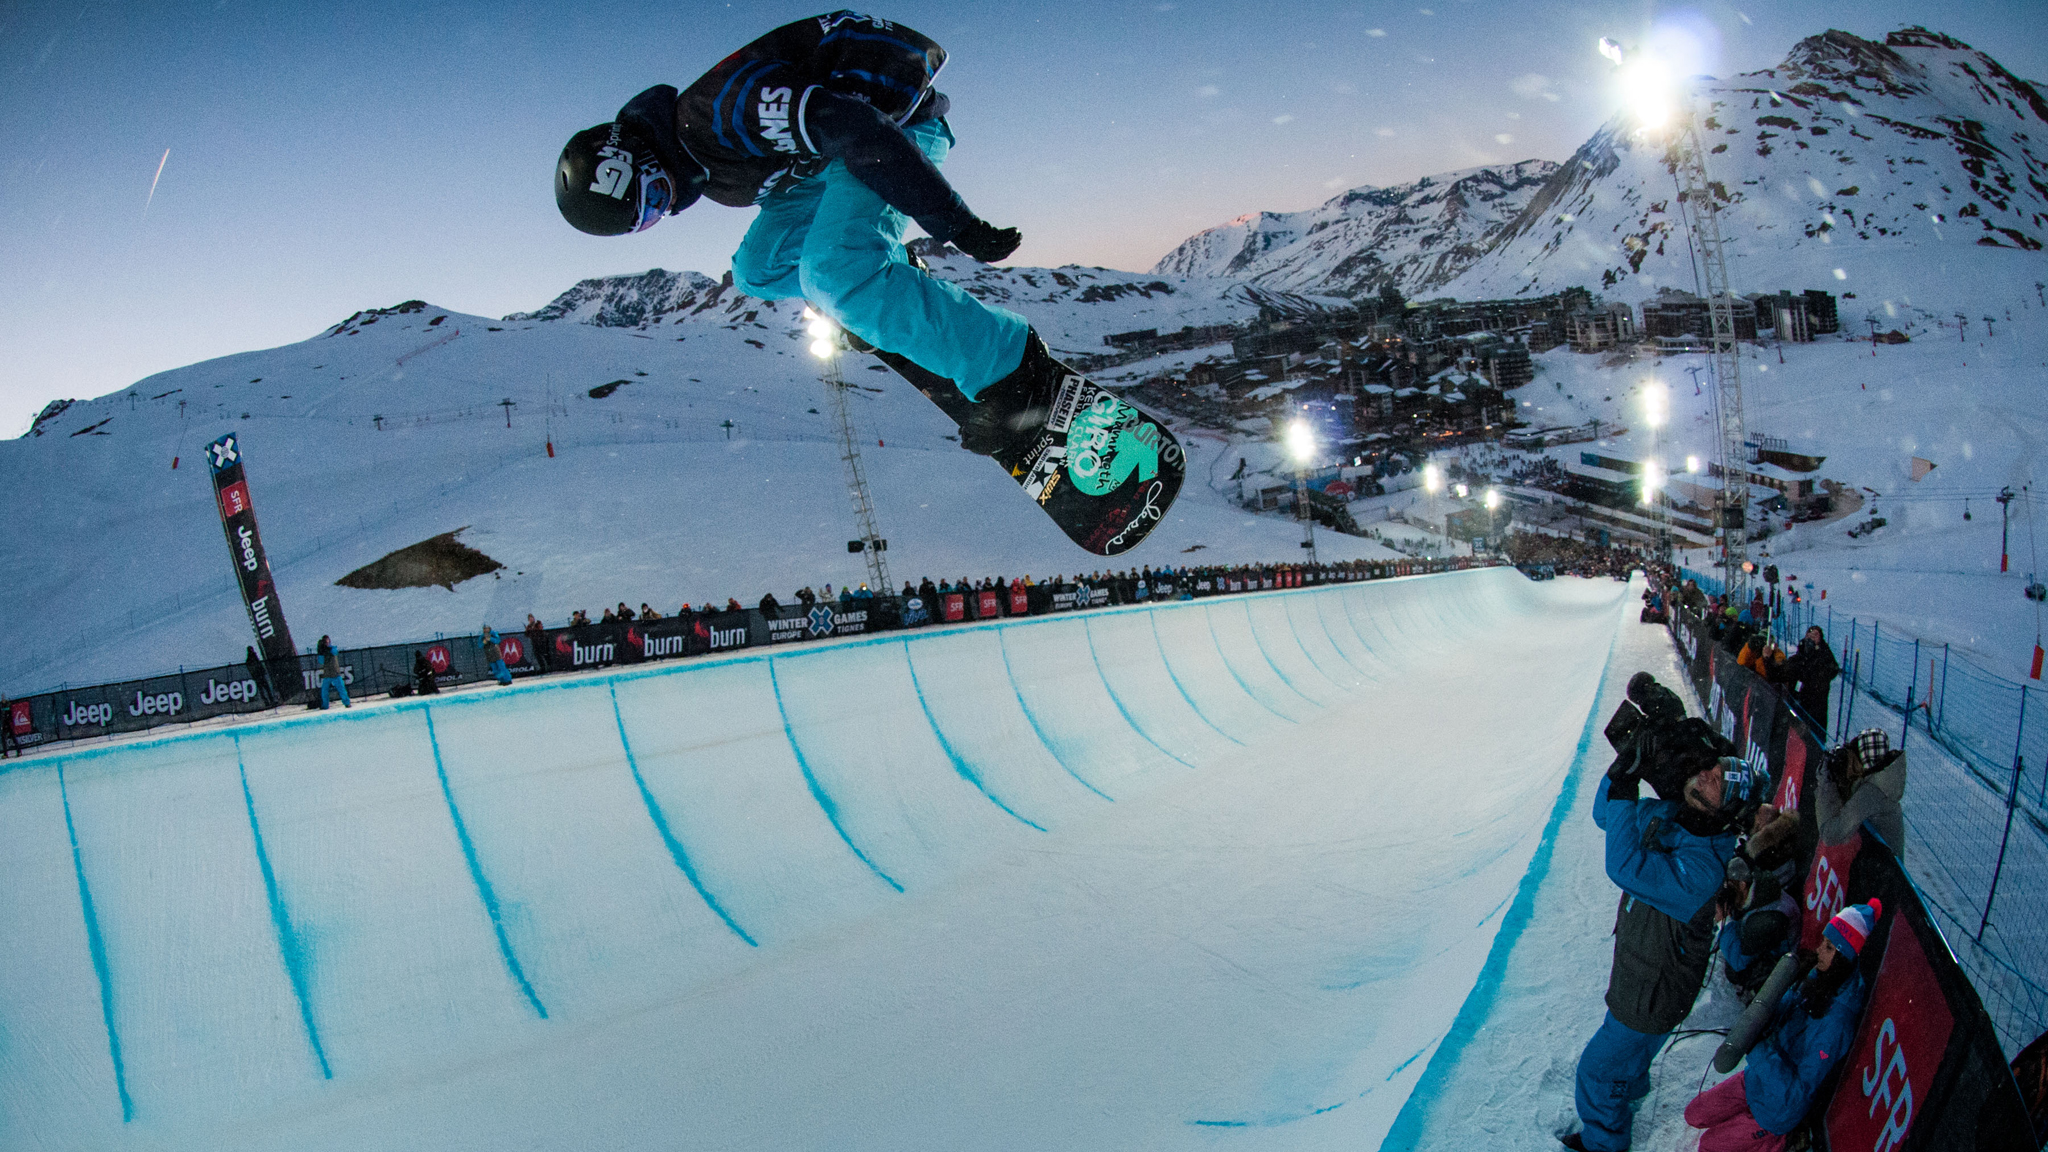 Kelly Clark will be going for a Tignes three-peat this week in Women's Snowboard SuperPipe.